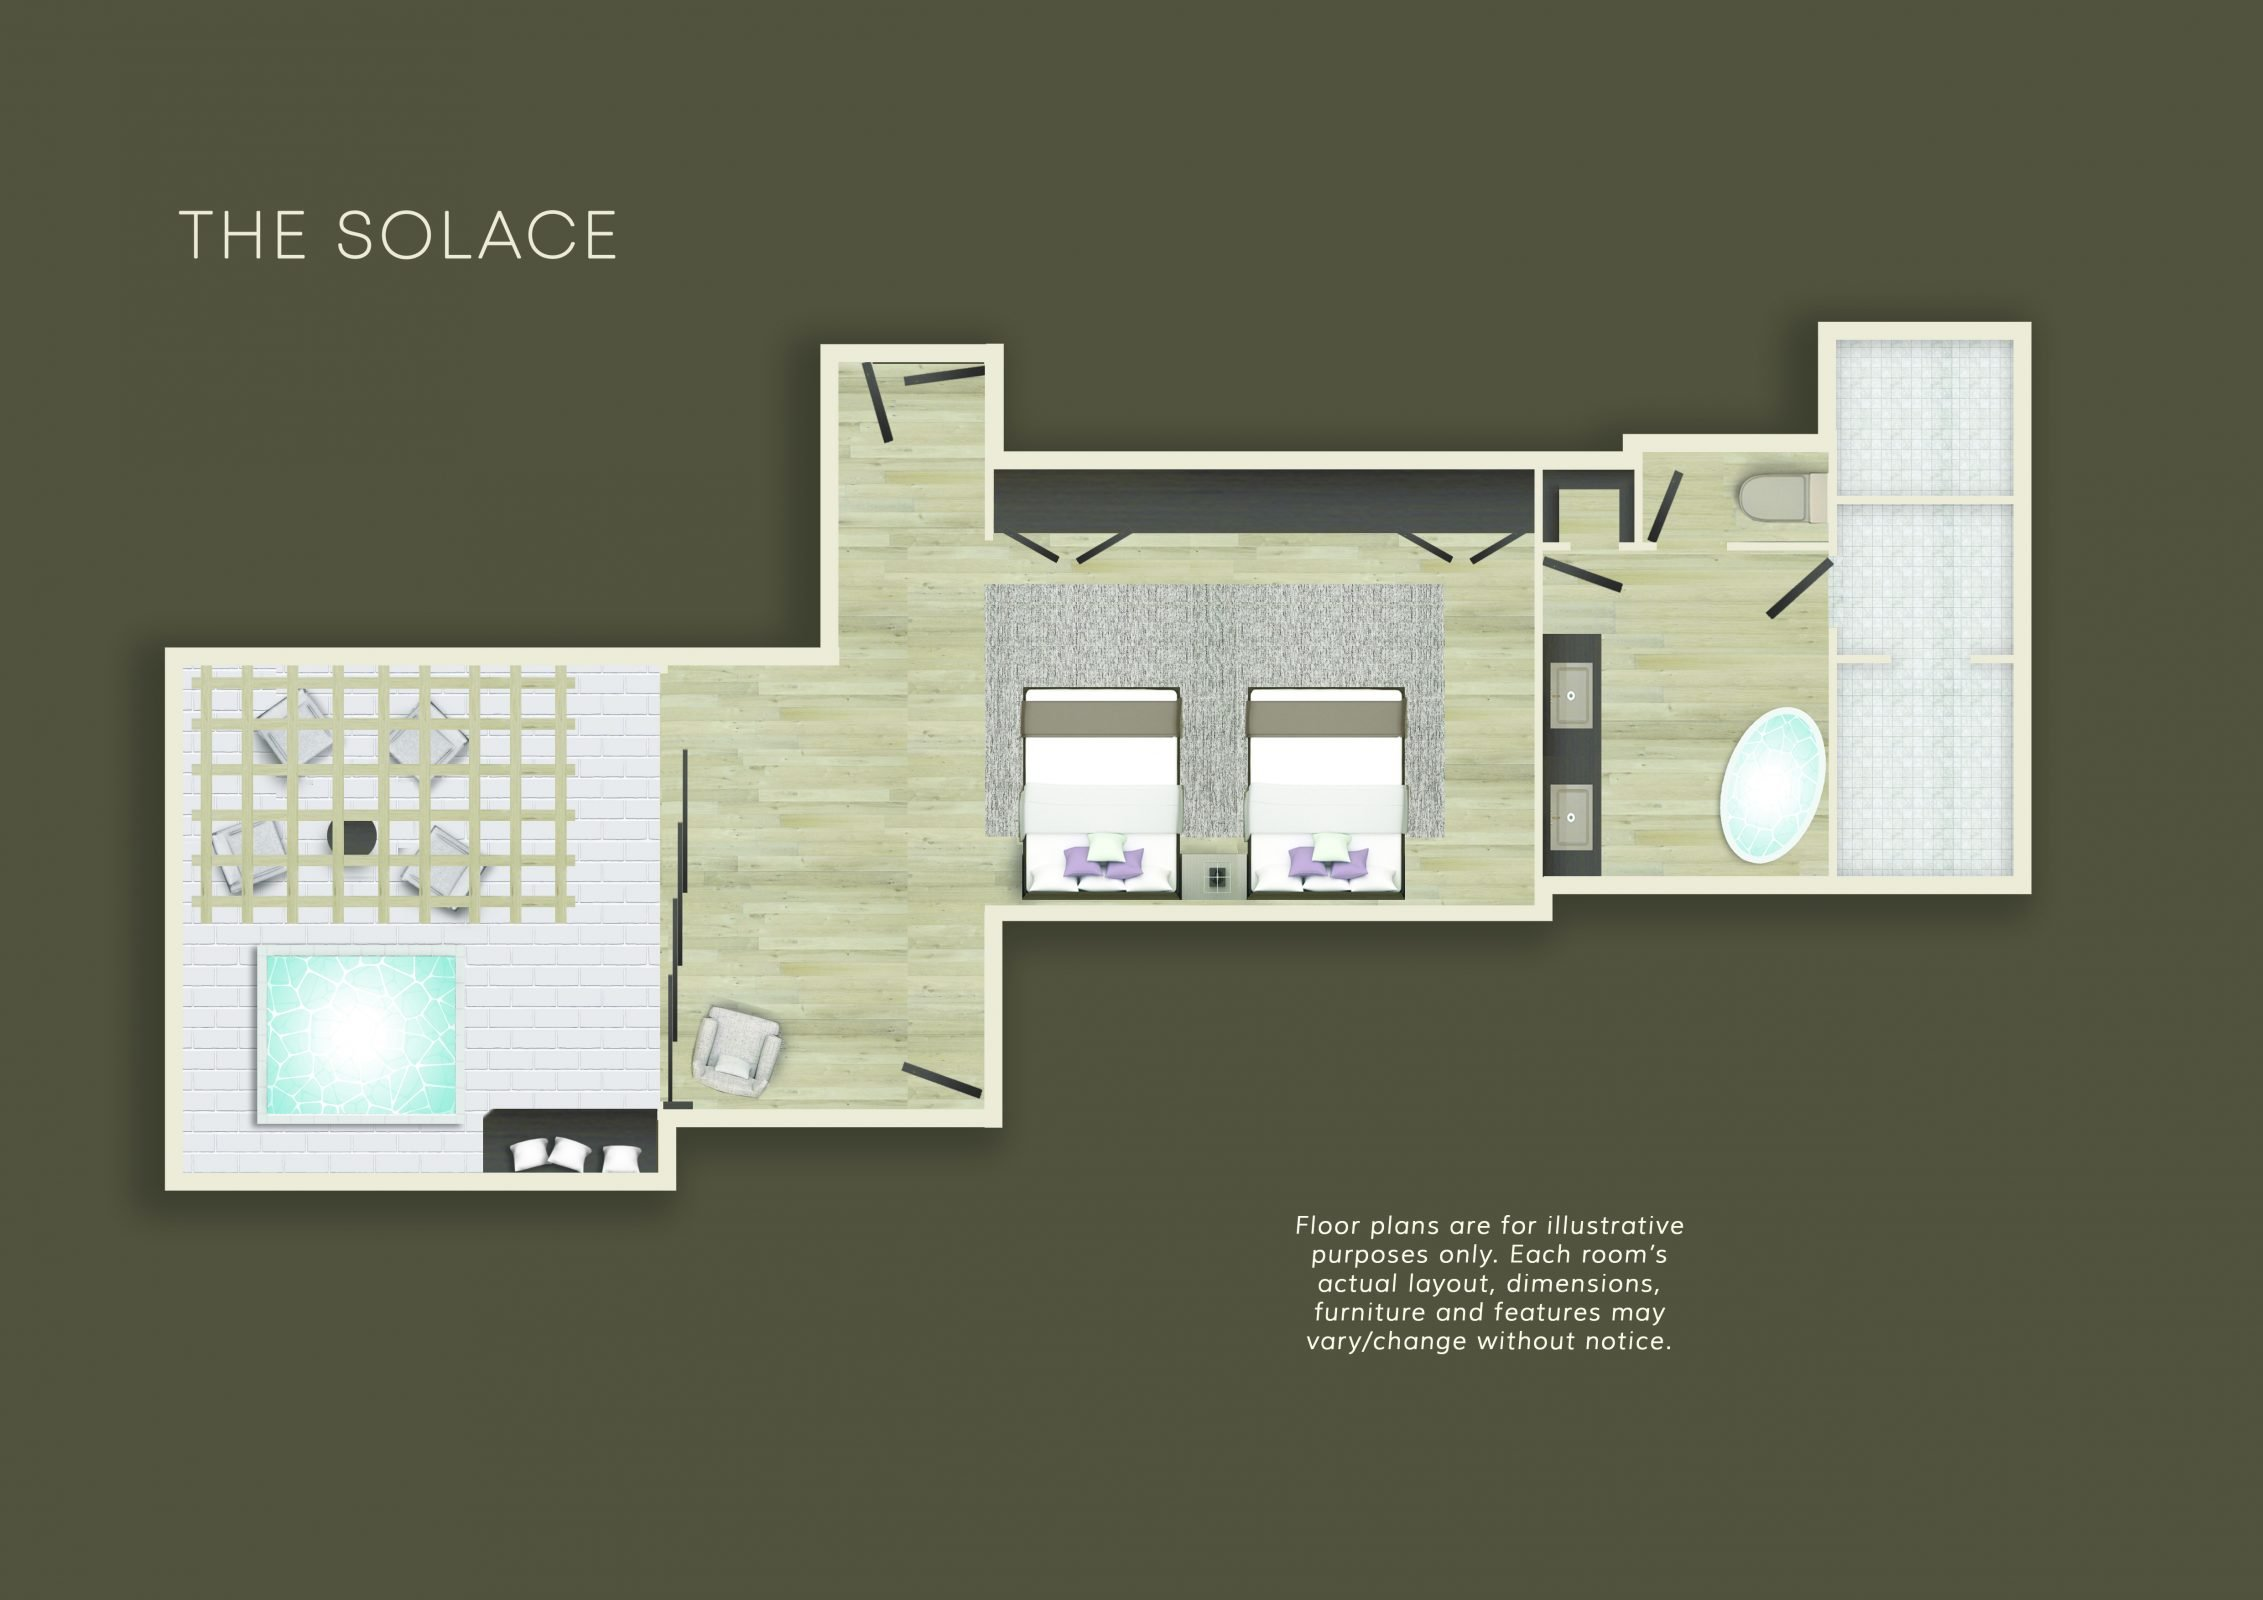 Floorplan for The Solace suite at Miraval Arizona.